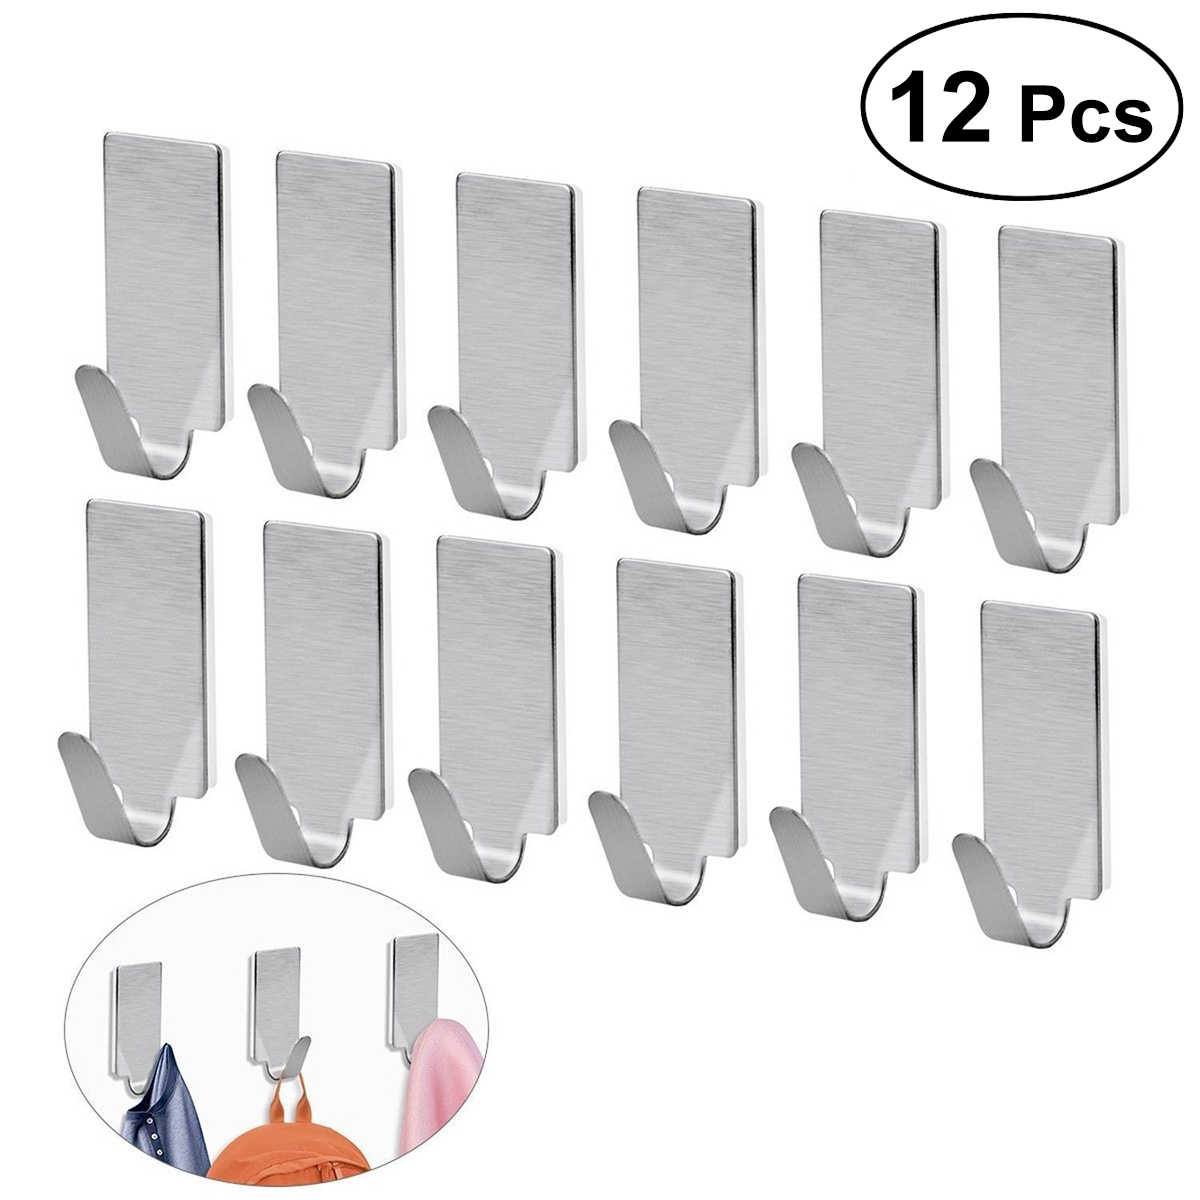 12pcs Strong Self Adhesive Stainless Steel Towel Mop Hooks Wall Hangers for Hanging Kitchen Bedroom Bathroom Accessories